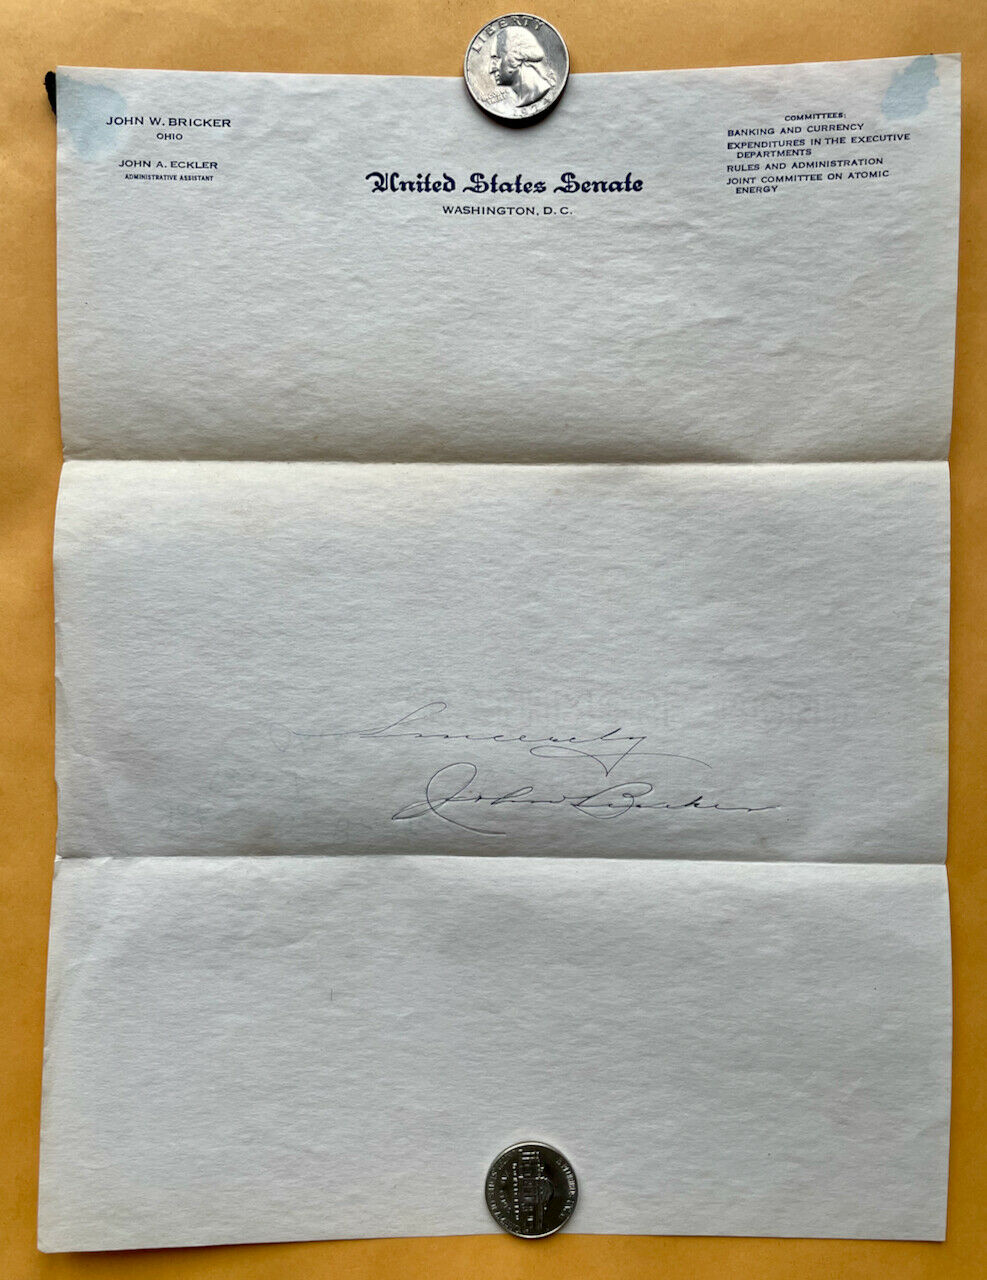 Lot of 2 Ohio 1947 US Senator Autographs from John Bricker & Robert Taft Без бренда